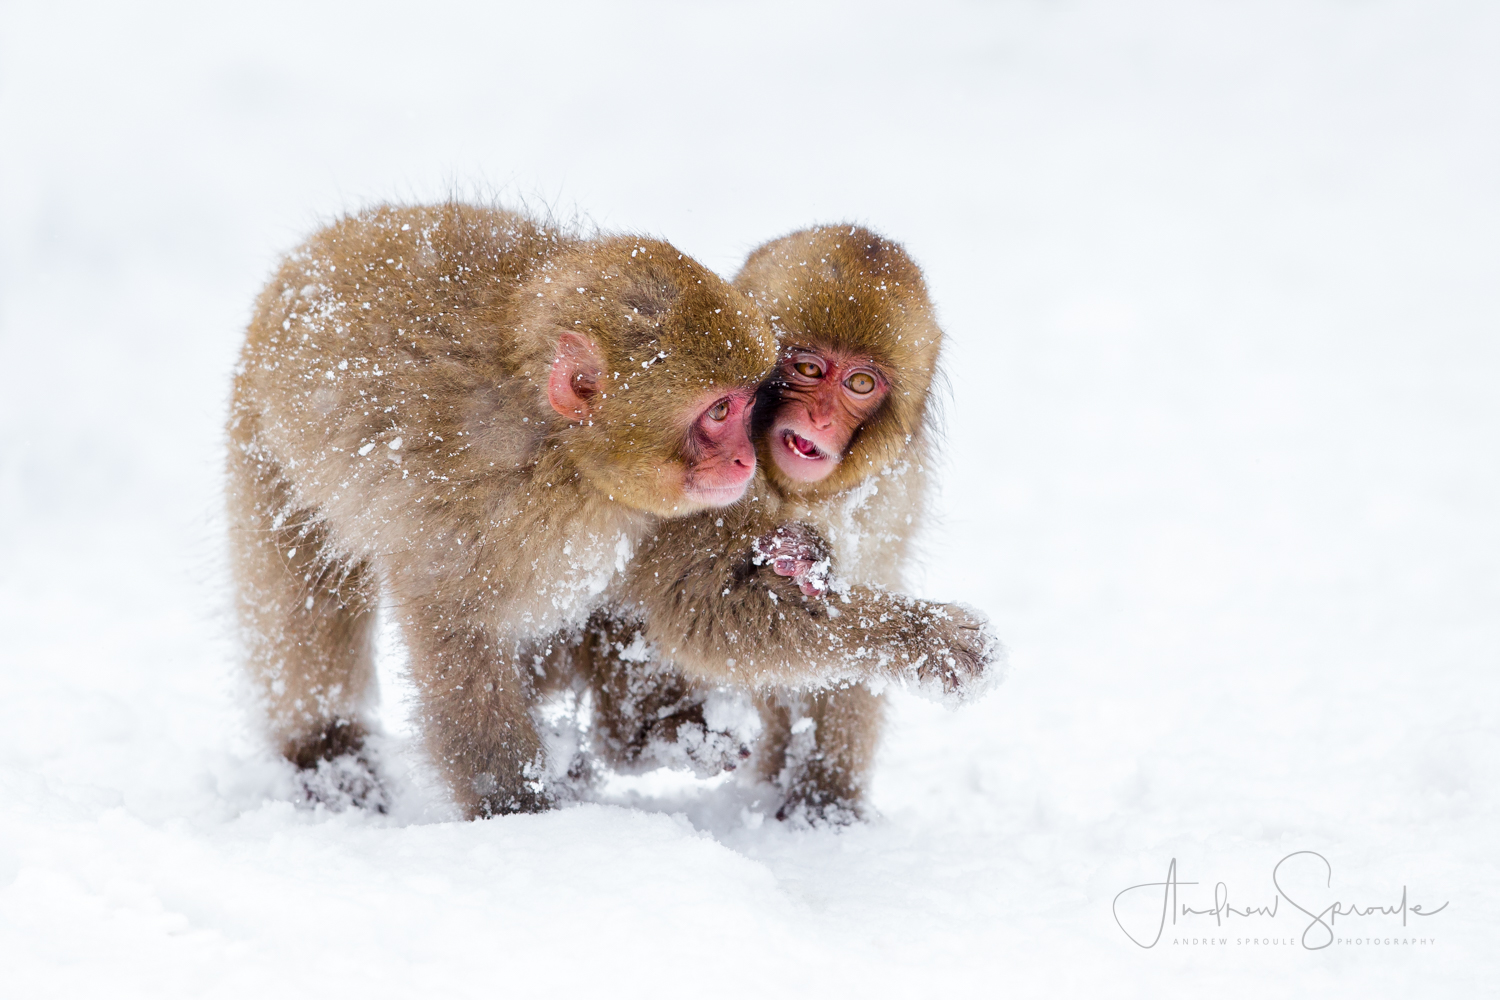 Snow Monkeys, Japanese Macaques (Macaca fuscata), playing in the snow in Jigokudani, Japan